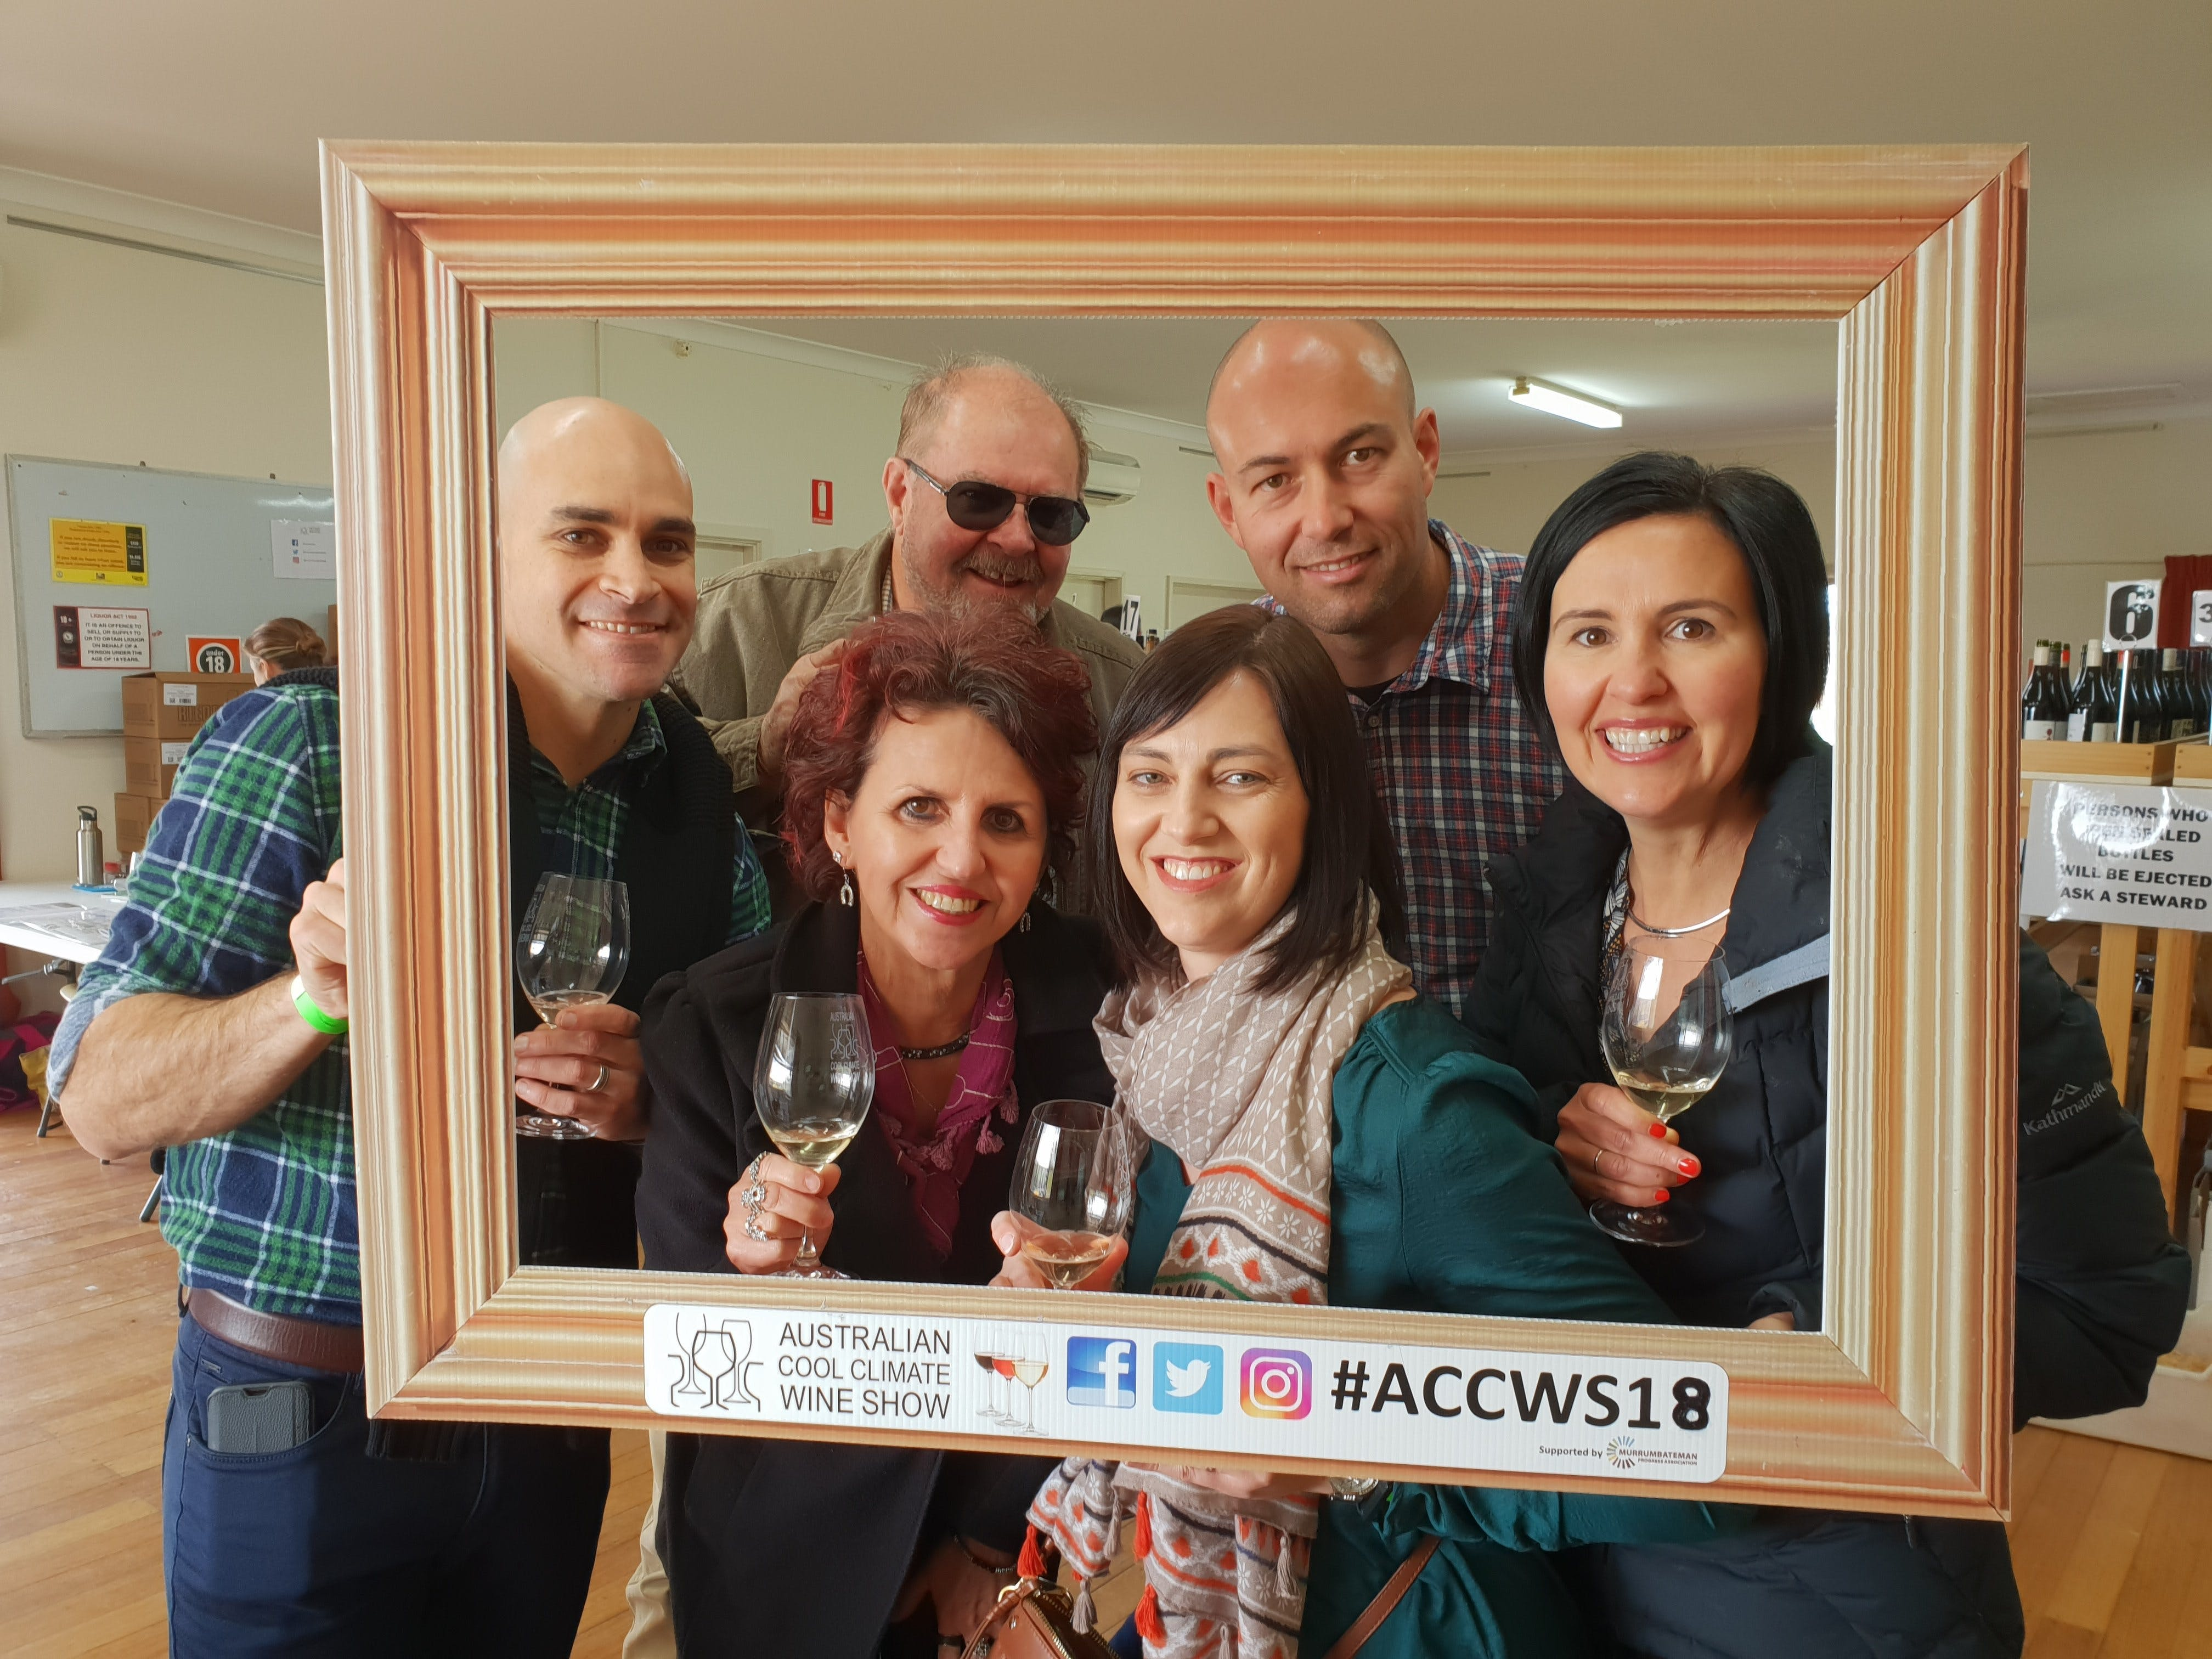 Australian Cool Climate Wine Show - Accommodation BNB